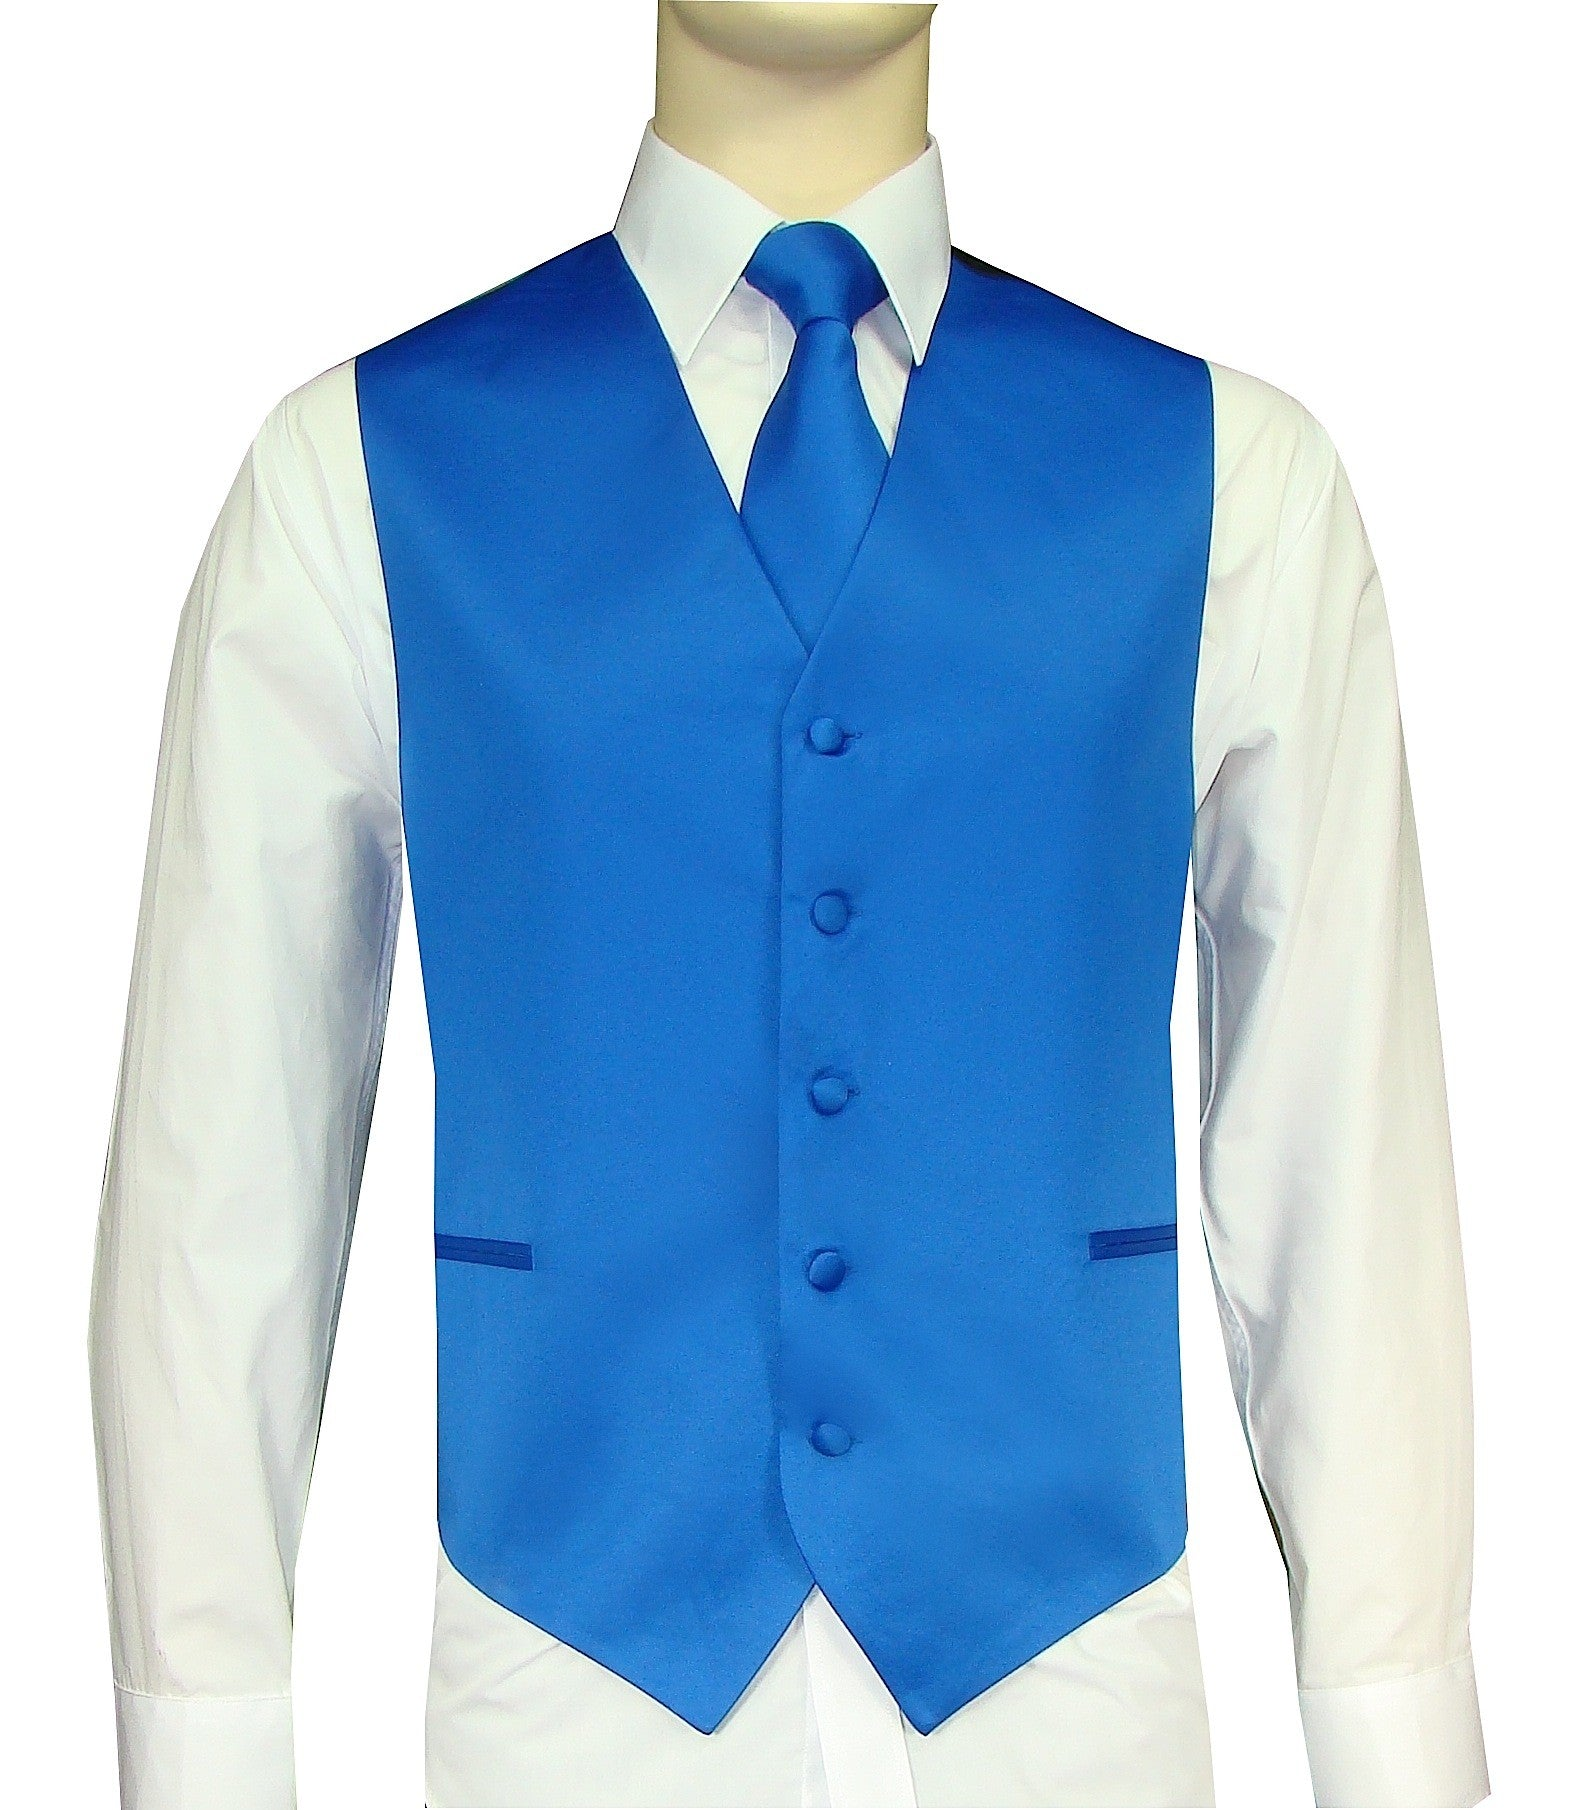 Royal Vest and Tie Set